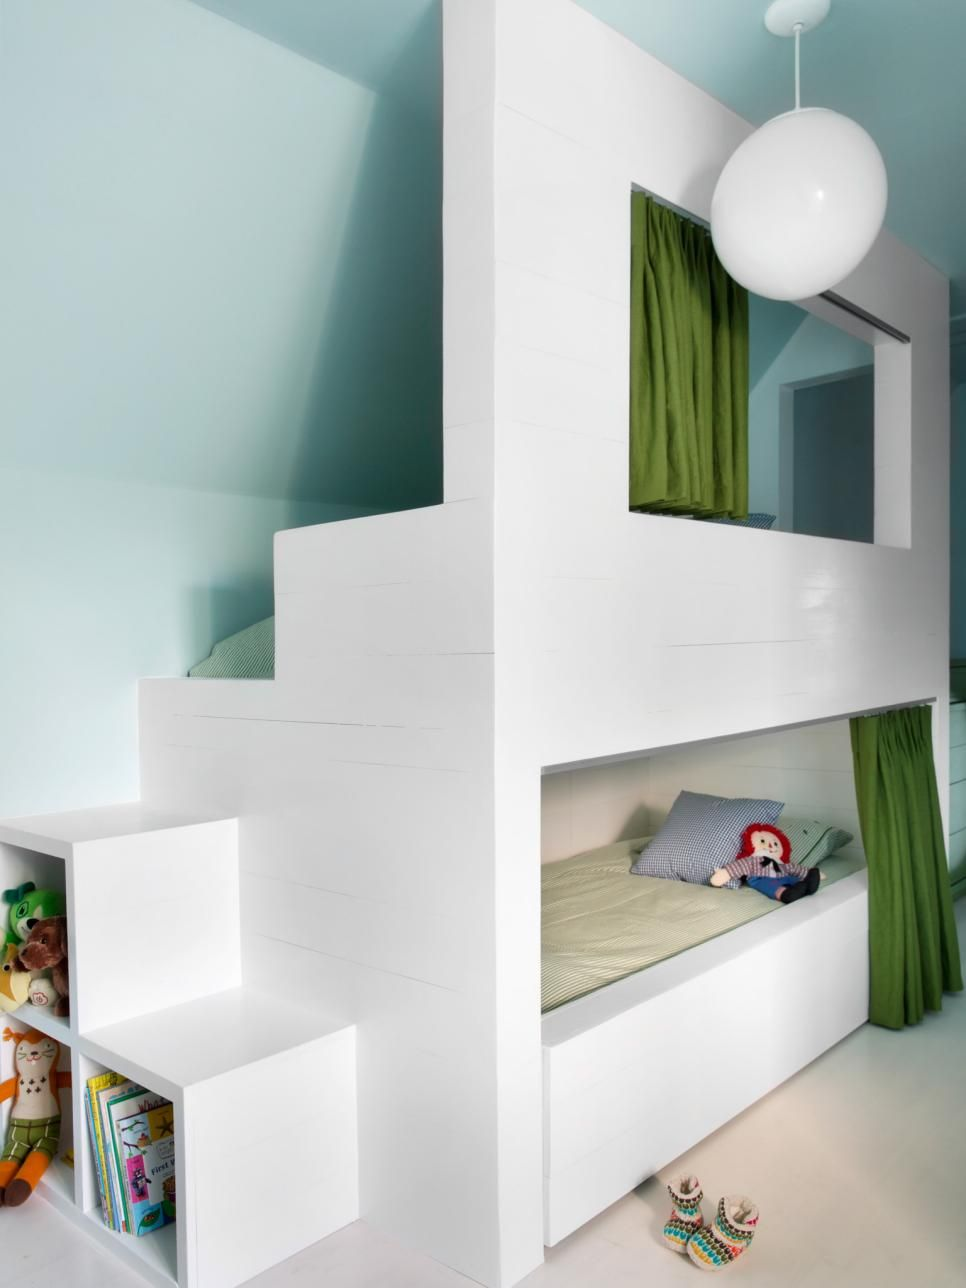 Built in loft bed ideas  Kidsu Bunk Bed and Bunkroom Design Ideas  Bunk bed Cafe curtains